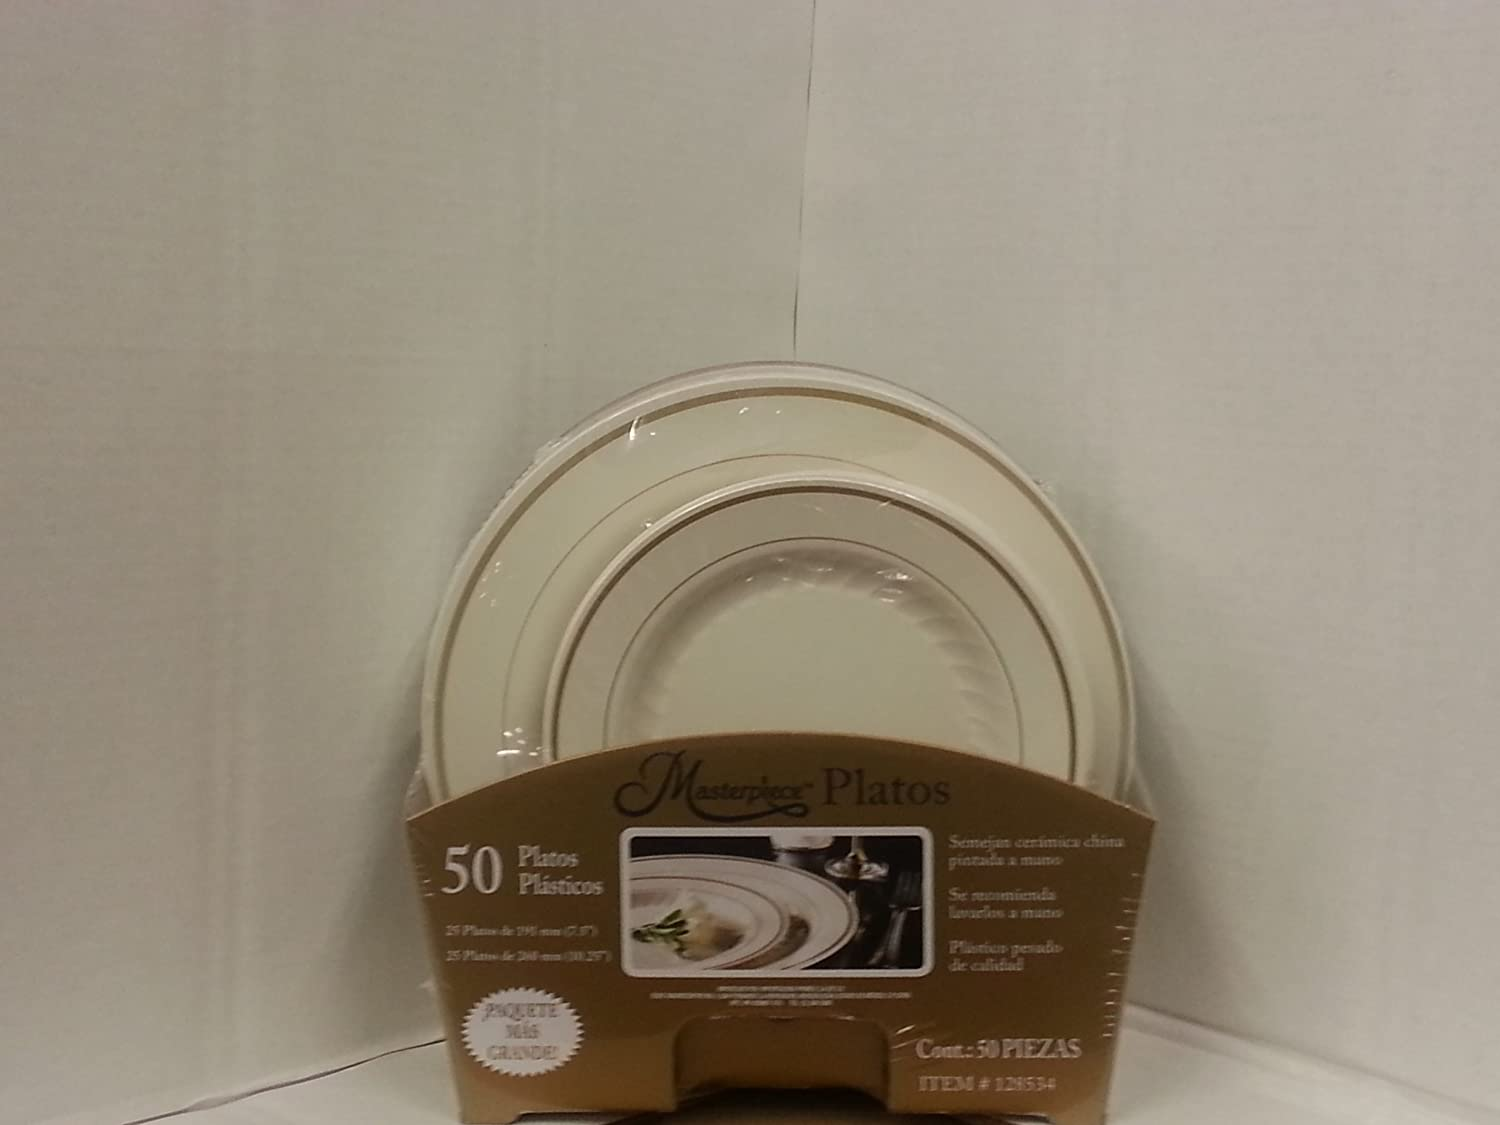 Amazon.com Masterpiece Premium Heavyweight Gold Trim Plastic Plates 25 Dinner Plates and 25 Salad Plates Kitchen u0026 Dining & Amazon.com: Masterpiece Premium Heavyweight Gold Trim Plastic Plates ...